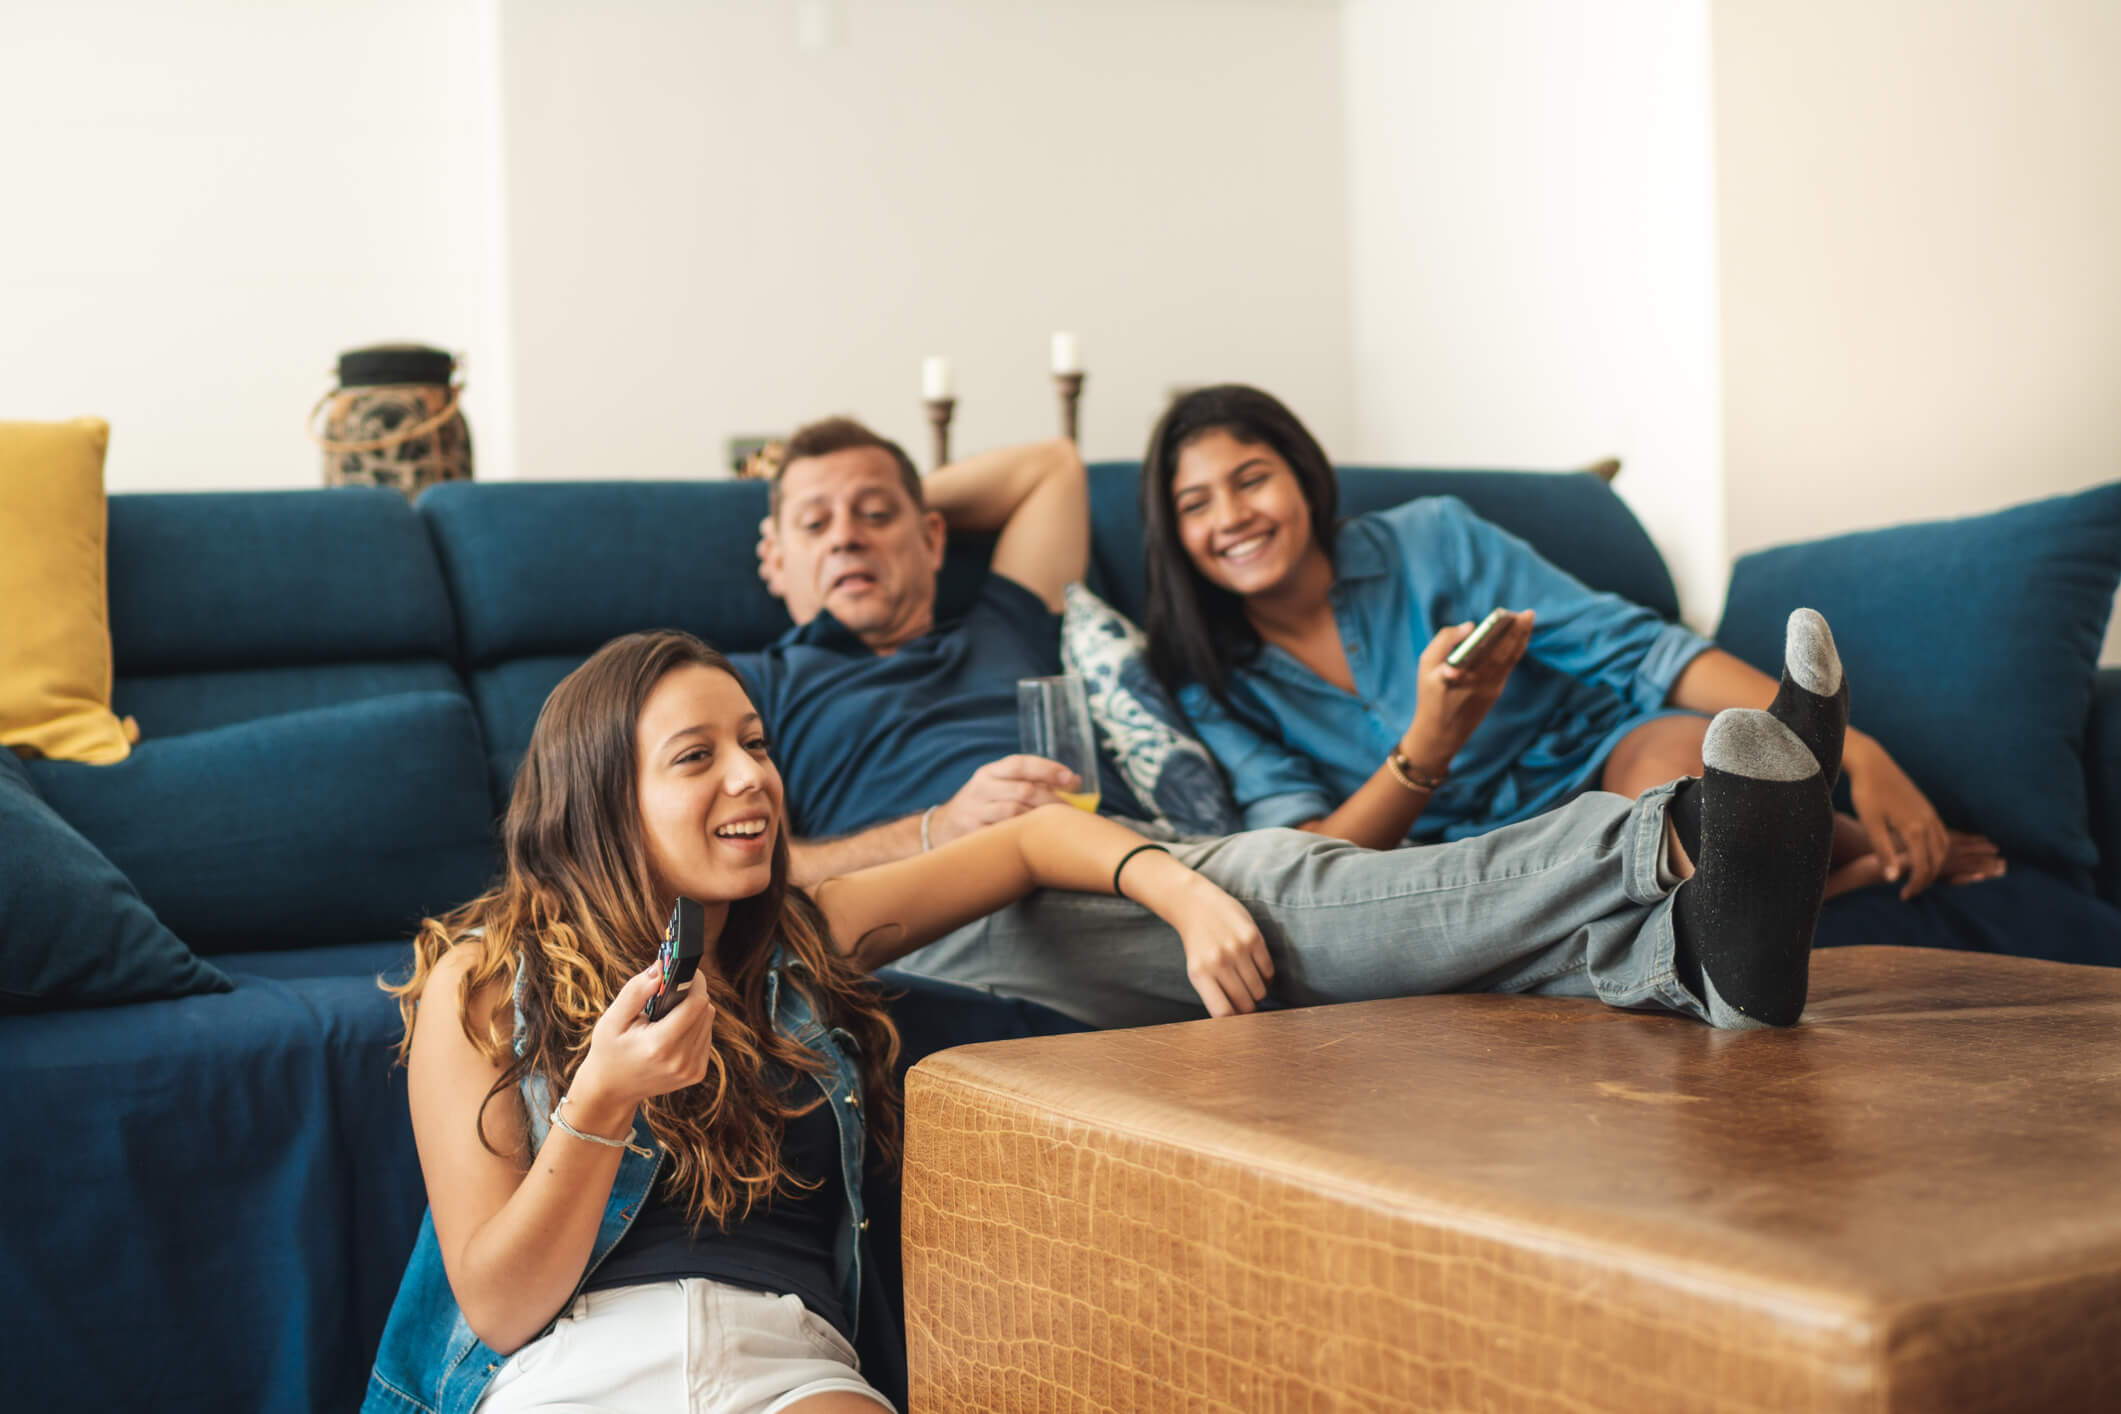 Dad and two daughters lounging on living room couch watching TV